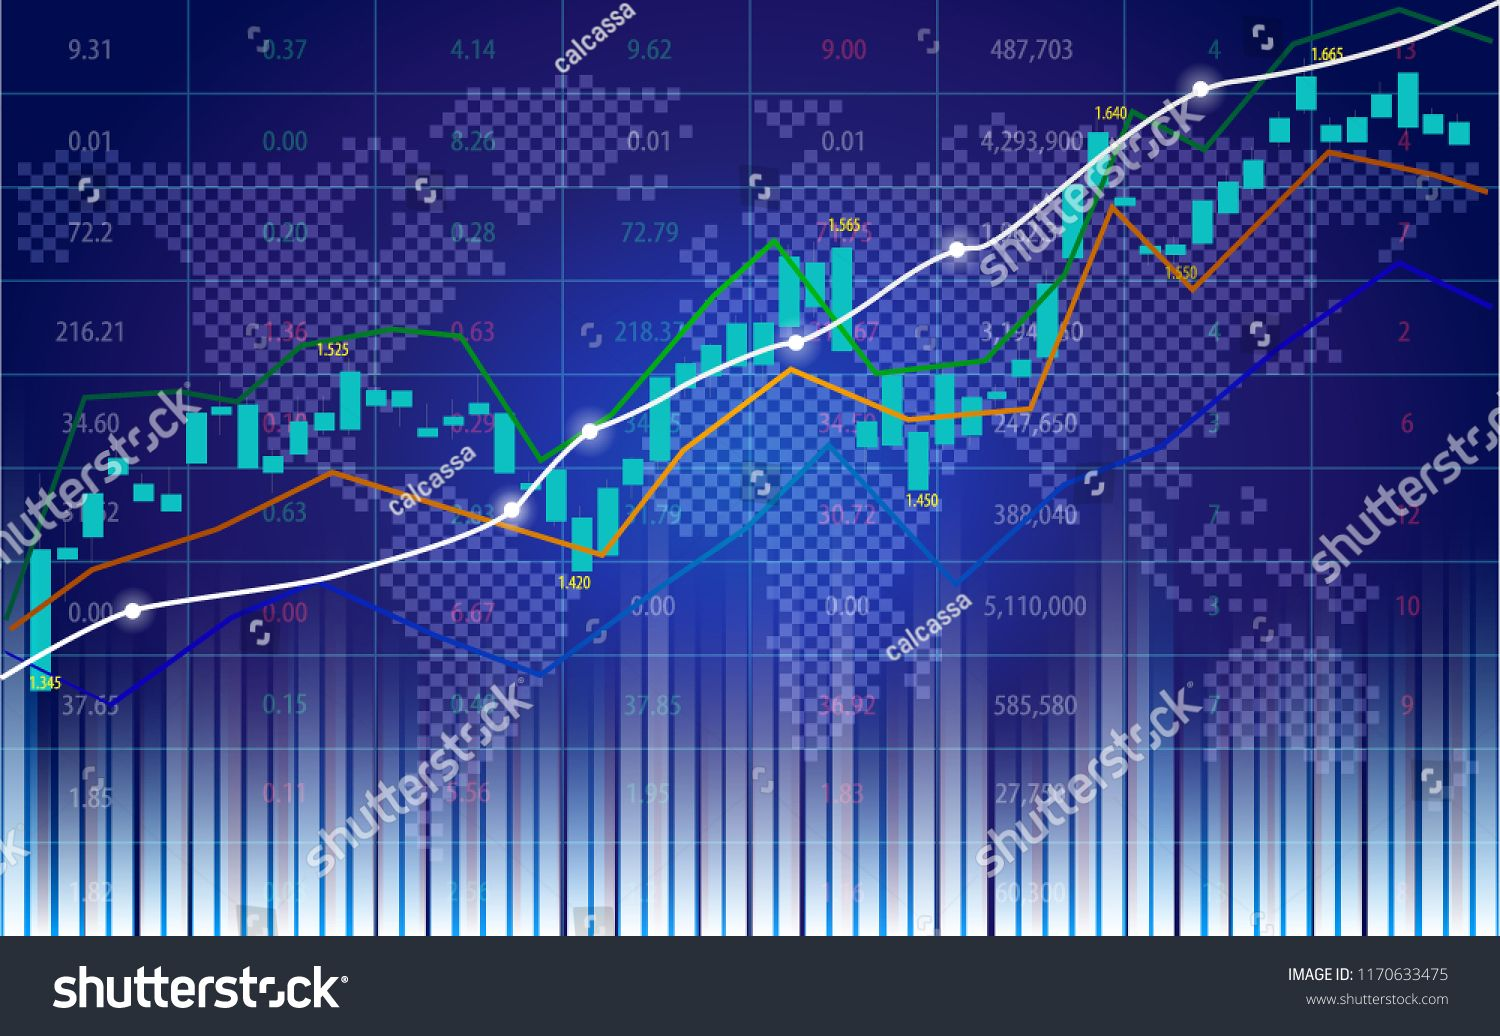 Stock Market Or Forex Trading Chart With Indicator On World Map Background For Financial Concept Trading Chart Forex Trading Charts Map Background Stock Market